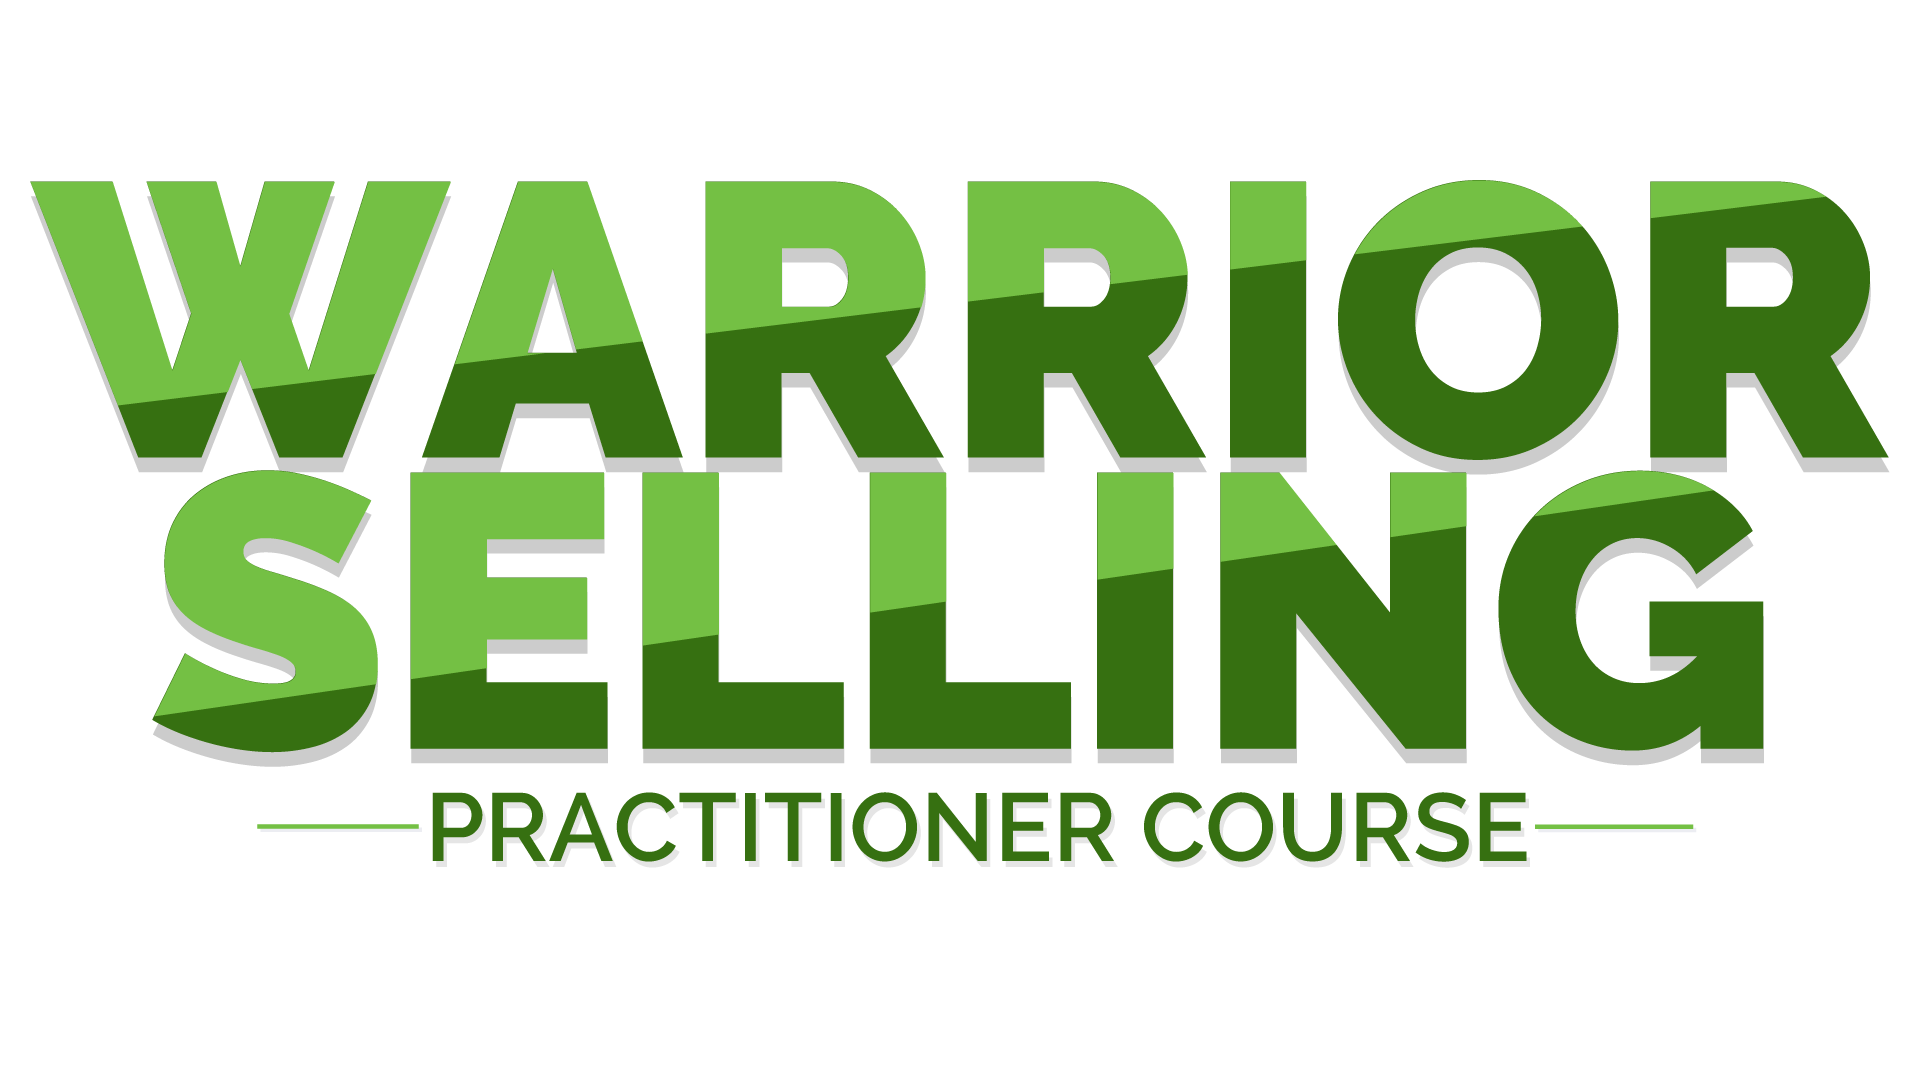 WARRIOR SELLING® PRACTITIONER COURSE